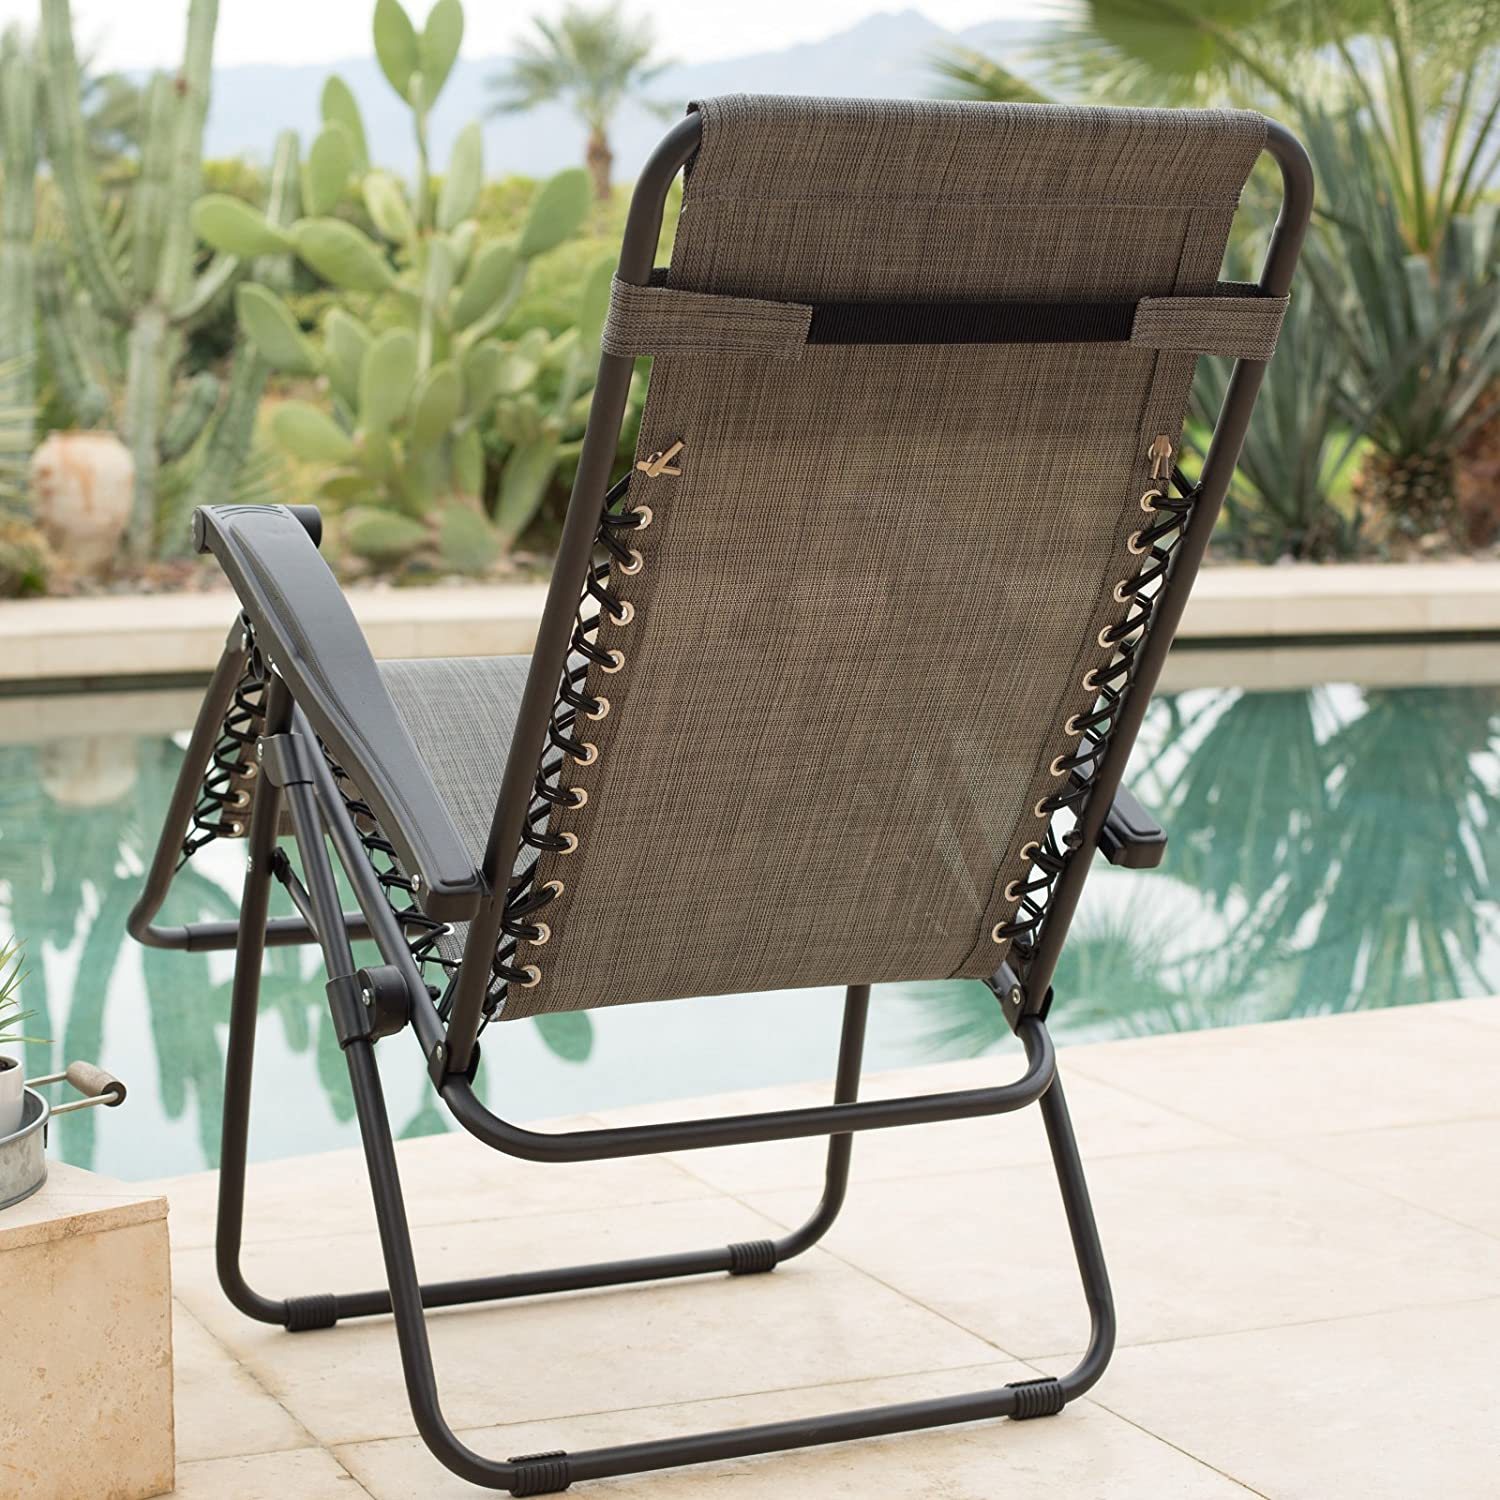 Amazon.com : Caravan Sports Zero Gravity Lounge Chair : Garden U0026 Outdoor